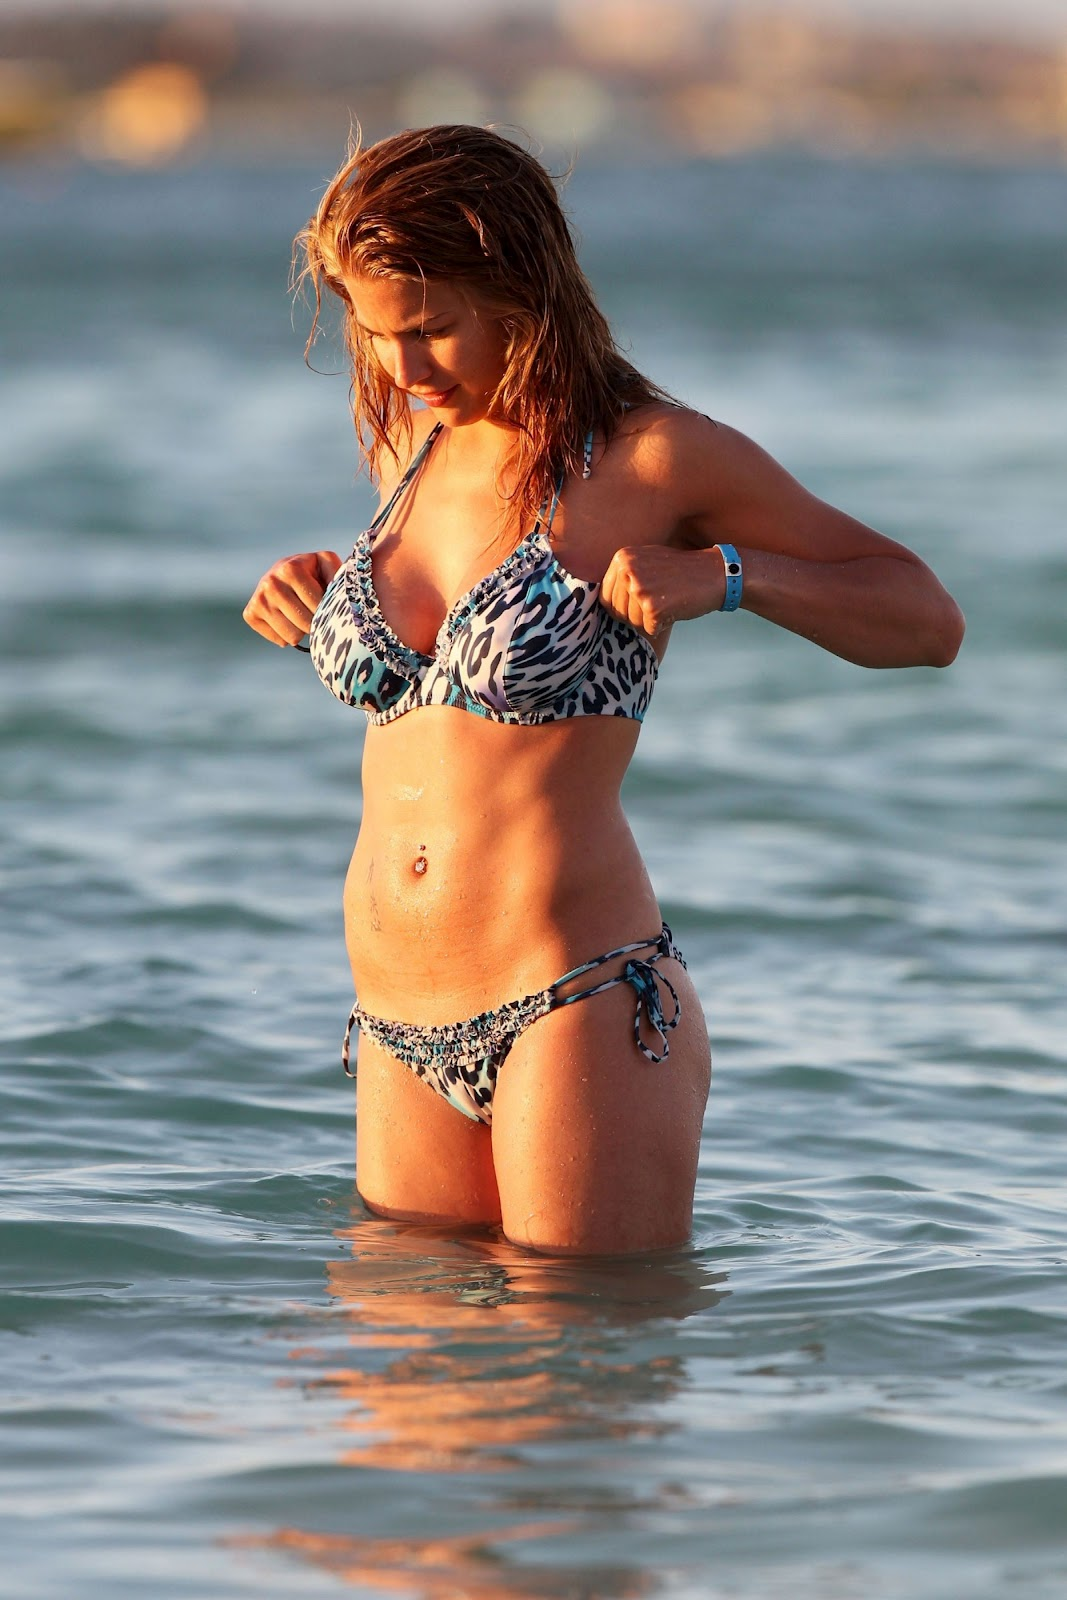 Gemma Atkinson, Gemma Atkinson Hot, Gemma Atkinson In Bikini, Gemma Atkinson Pics, Hollywood, Hollywood Babe